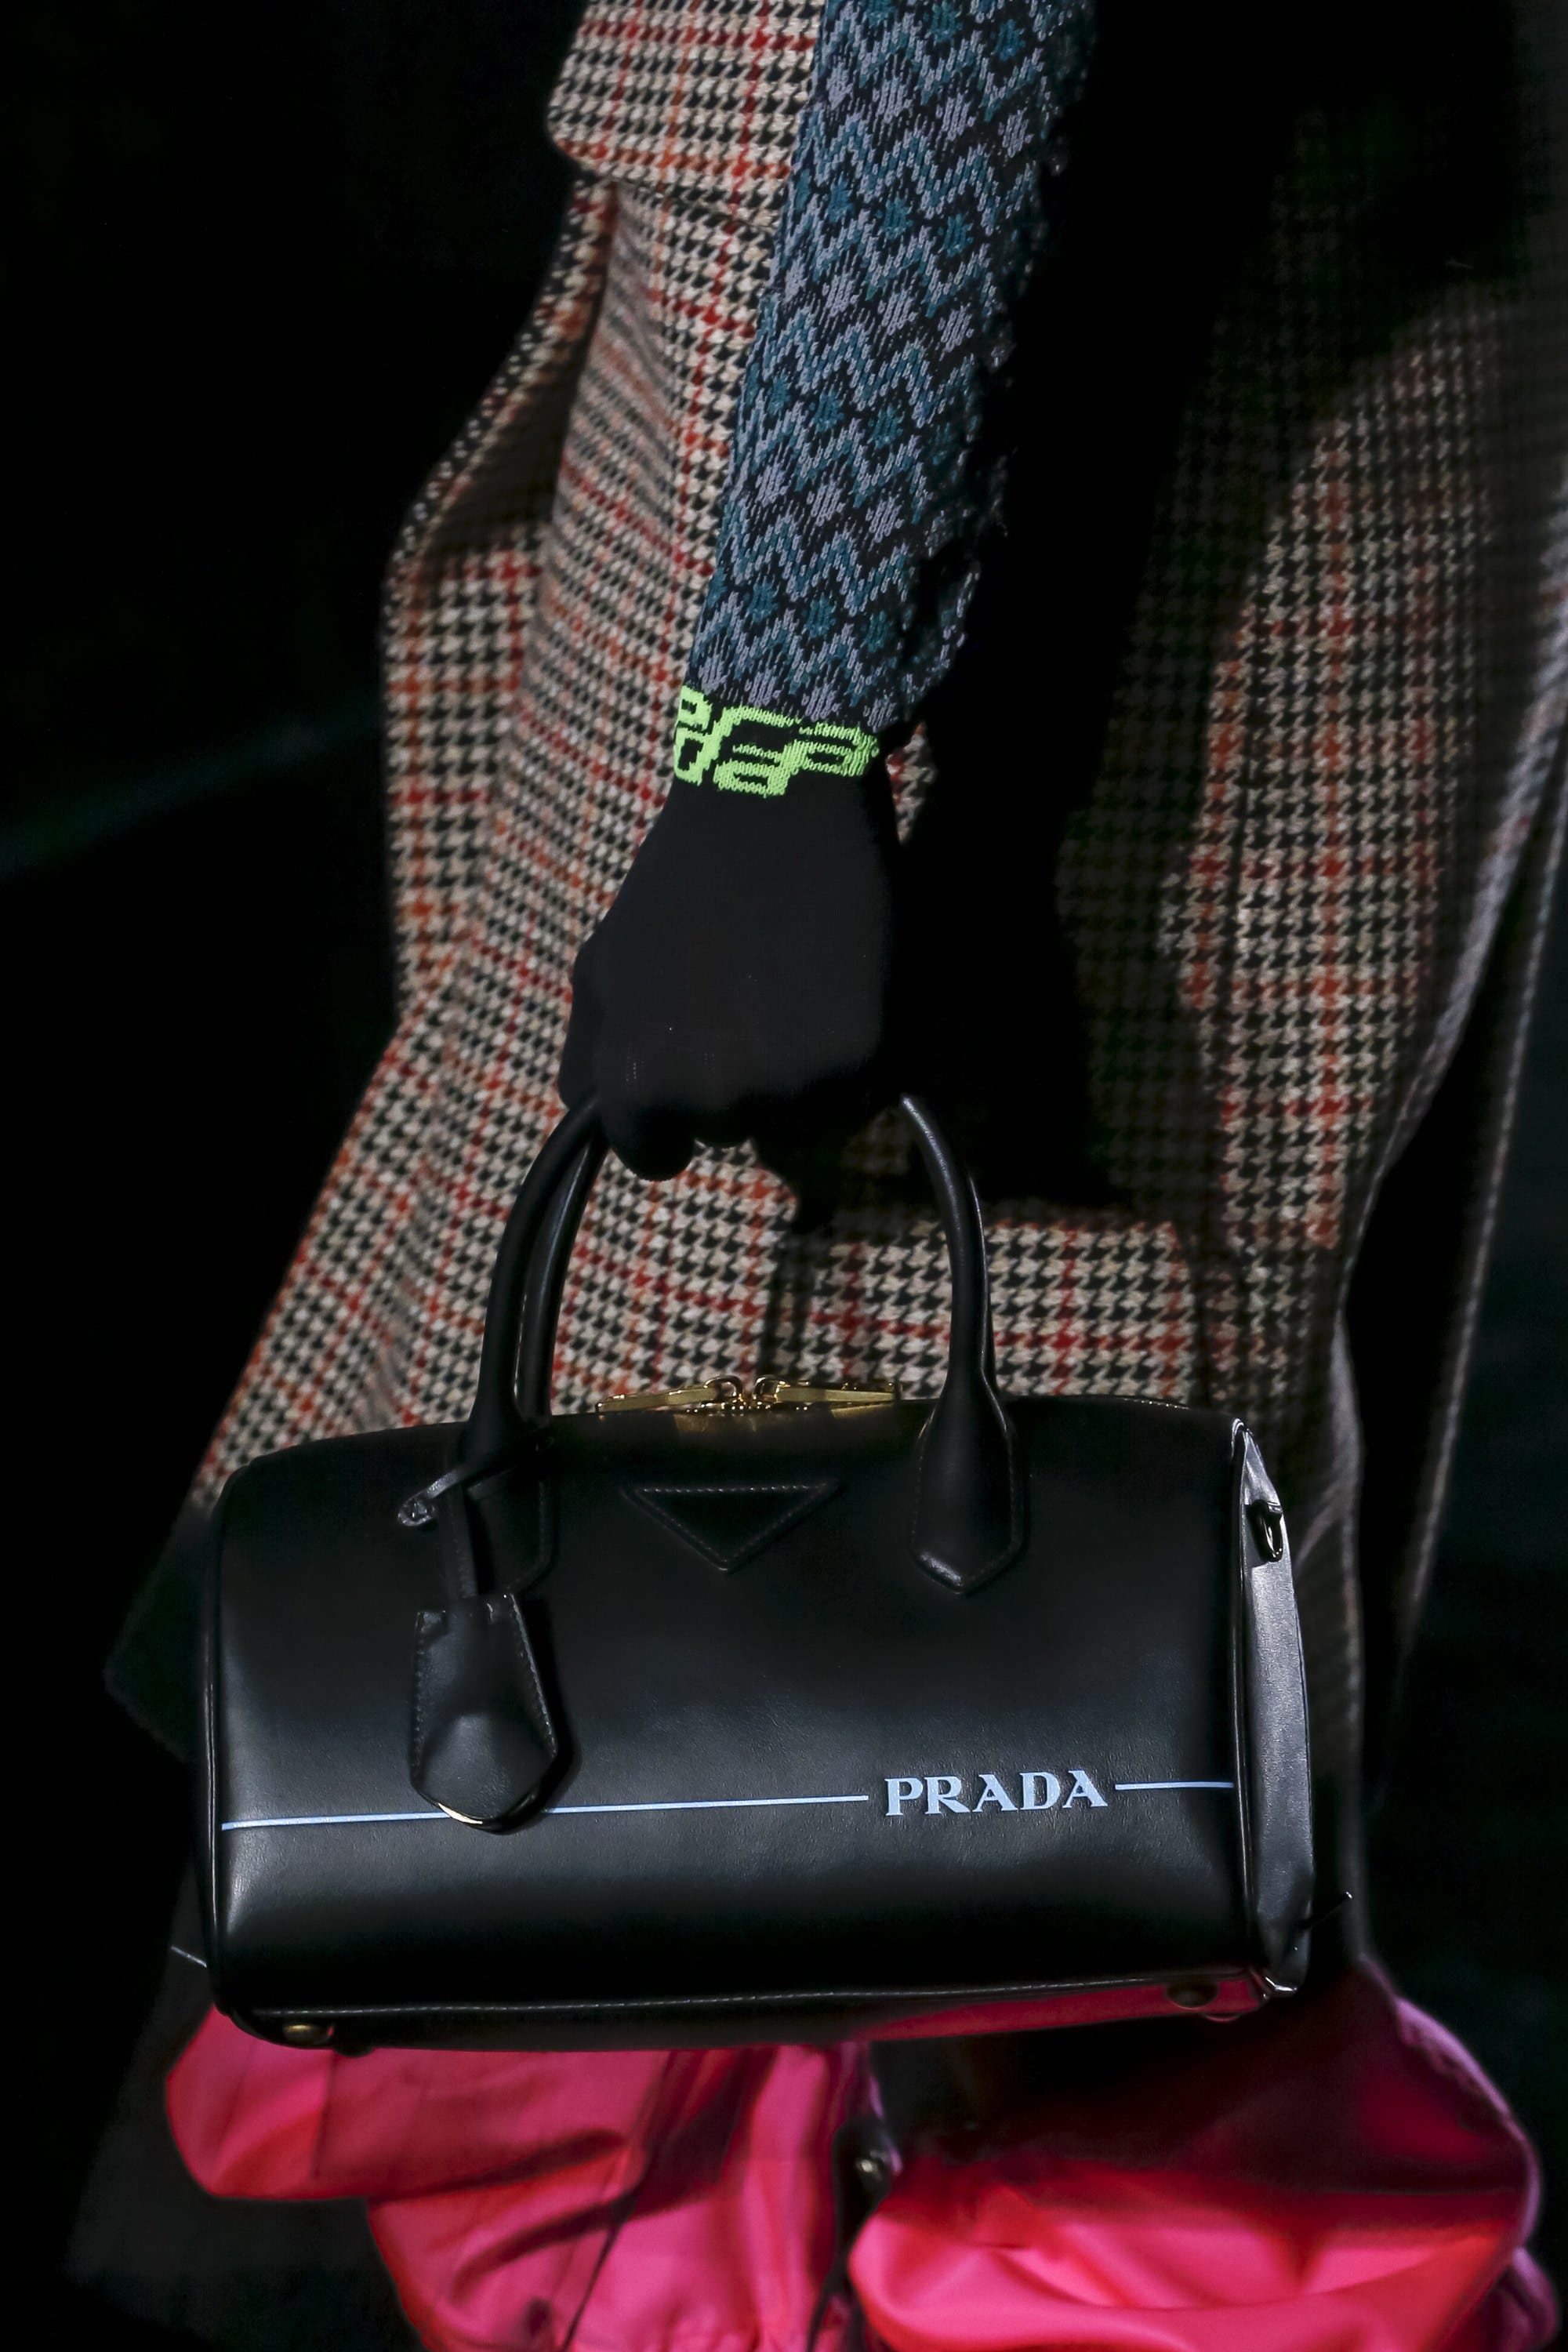 prada fall  winter 2018 runway bag collection